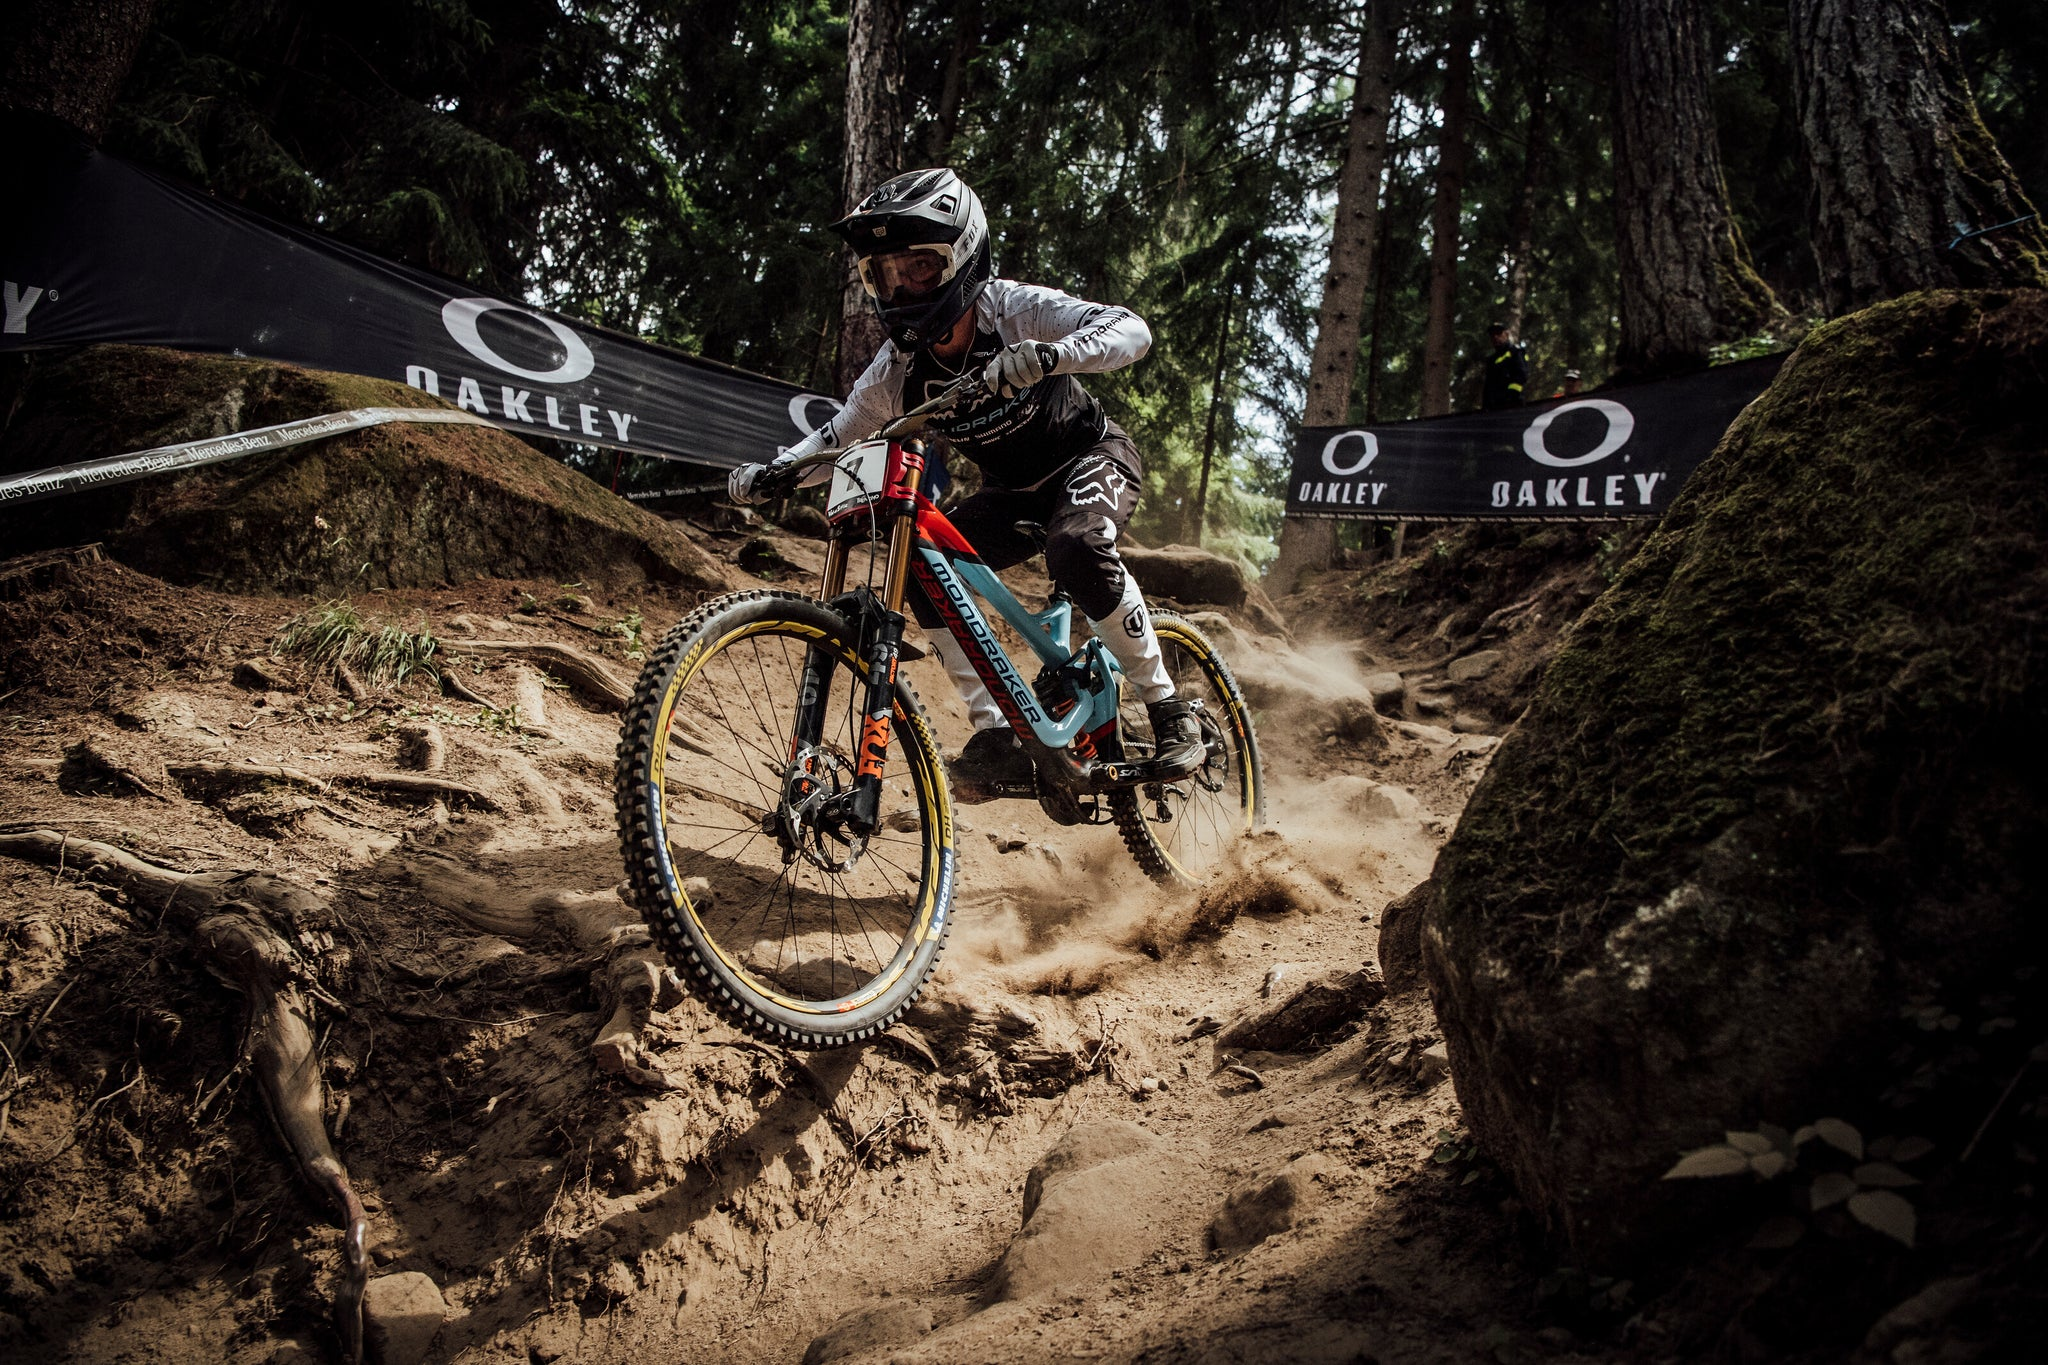 Laurie Greenland Val di Sole World Cup DH Mondraker win